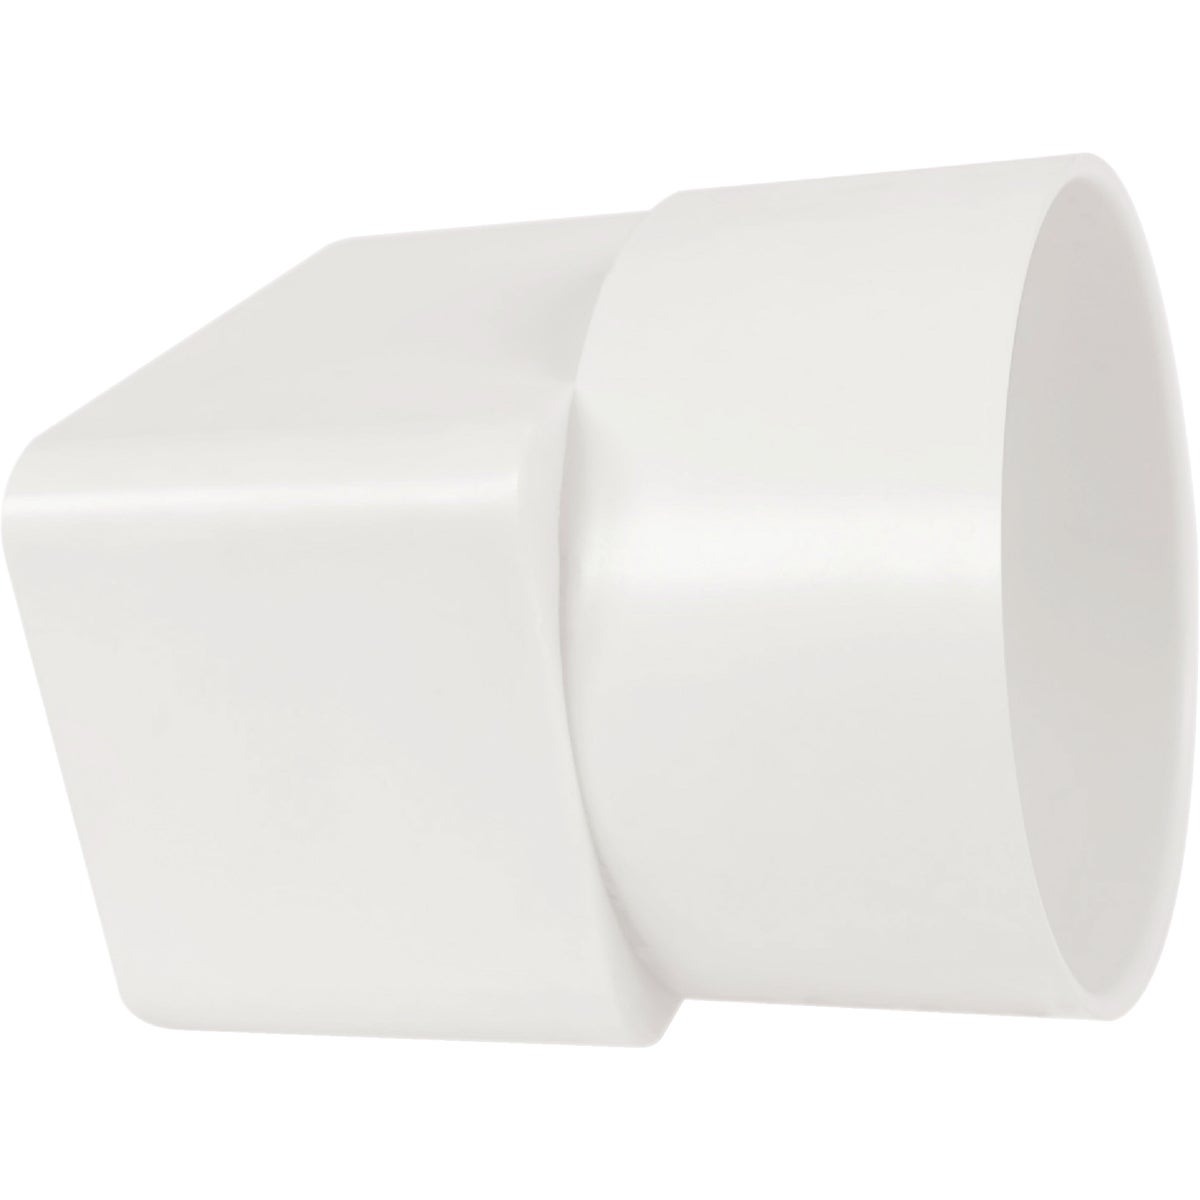 2X3X3 Downspout Adapter